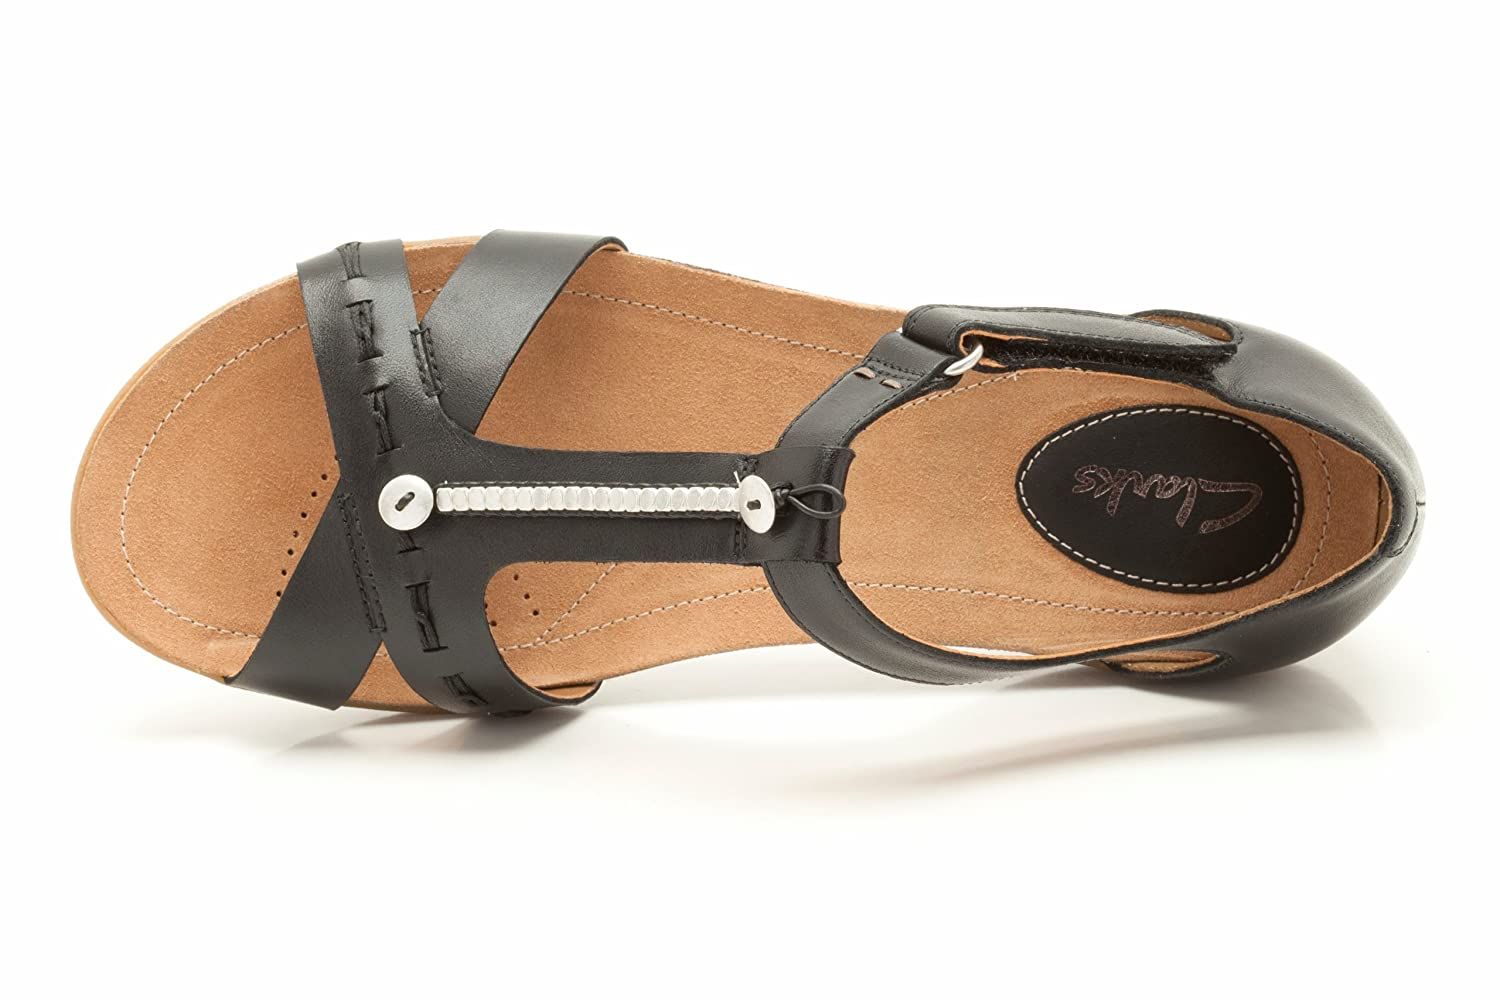 b091a8d0c758 Clarks Womens Casual Clarks Raffi Magic Leather Sandals In Black Standard  Fit Size 5  Amazon.co.uk  Shoes   Bags